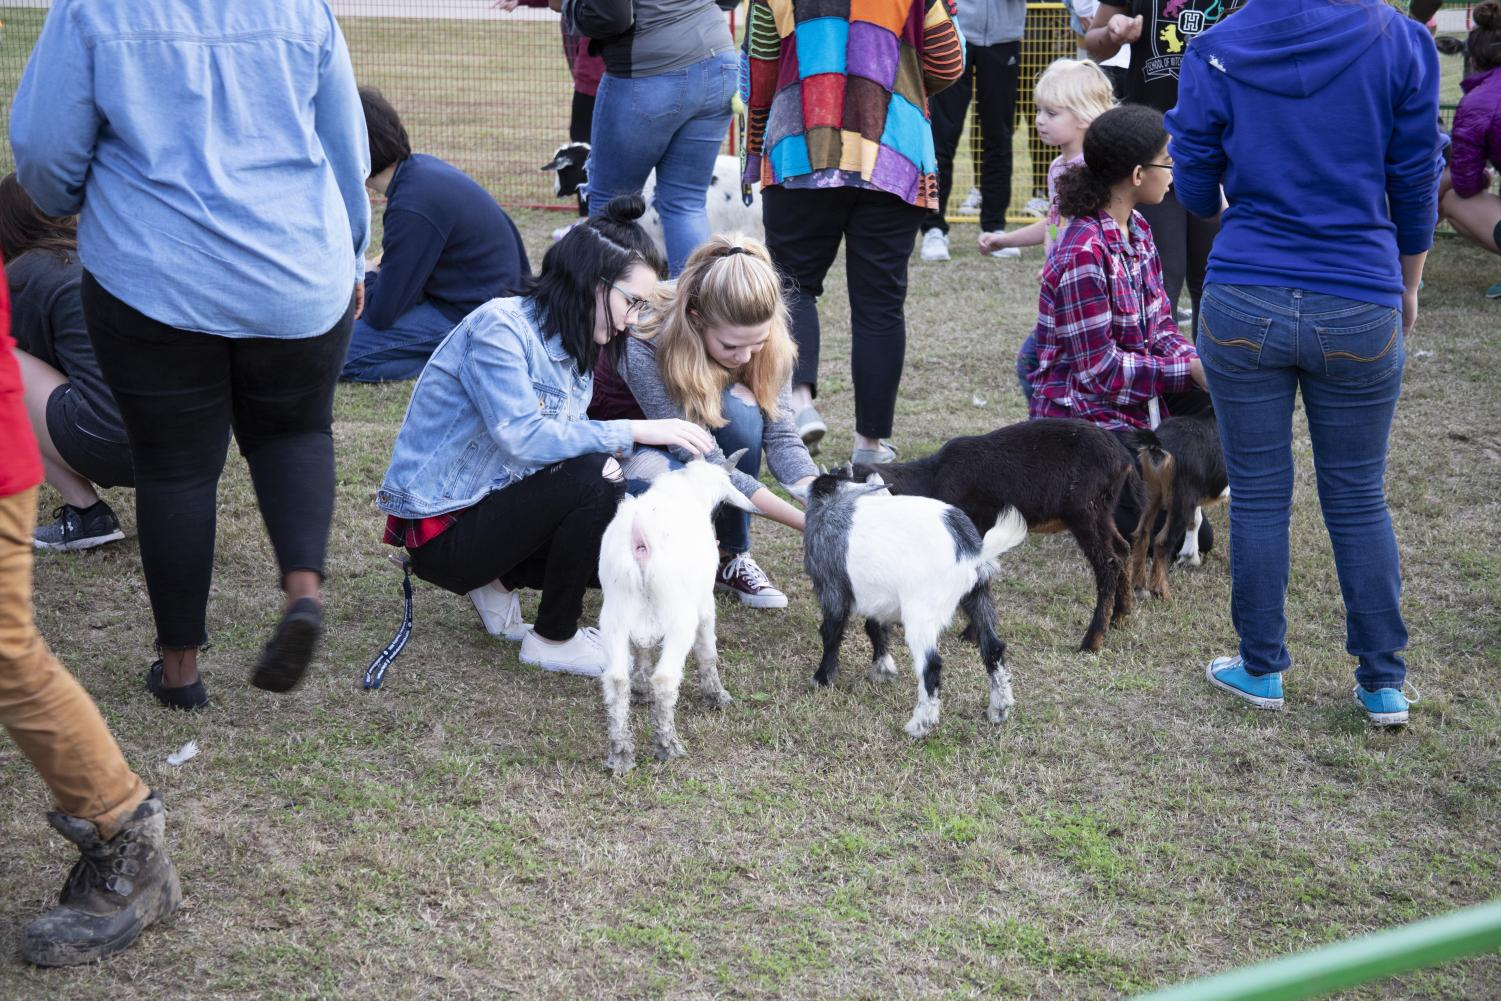 Students+interact+with+the+goats+at+the+petting+zoo.+East+Texan+Photo+%7C+John+Parsons+